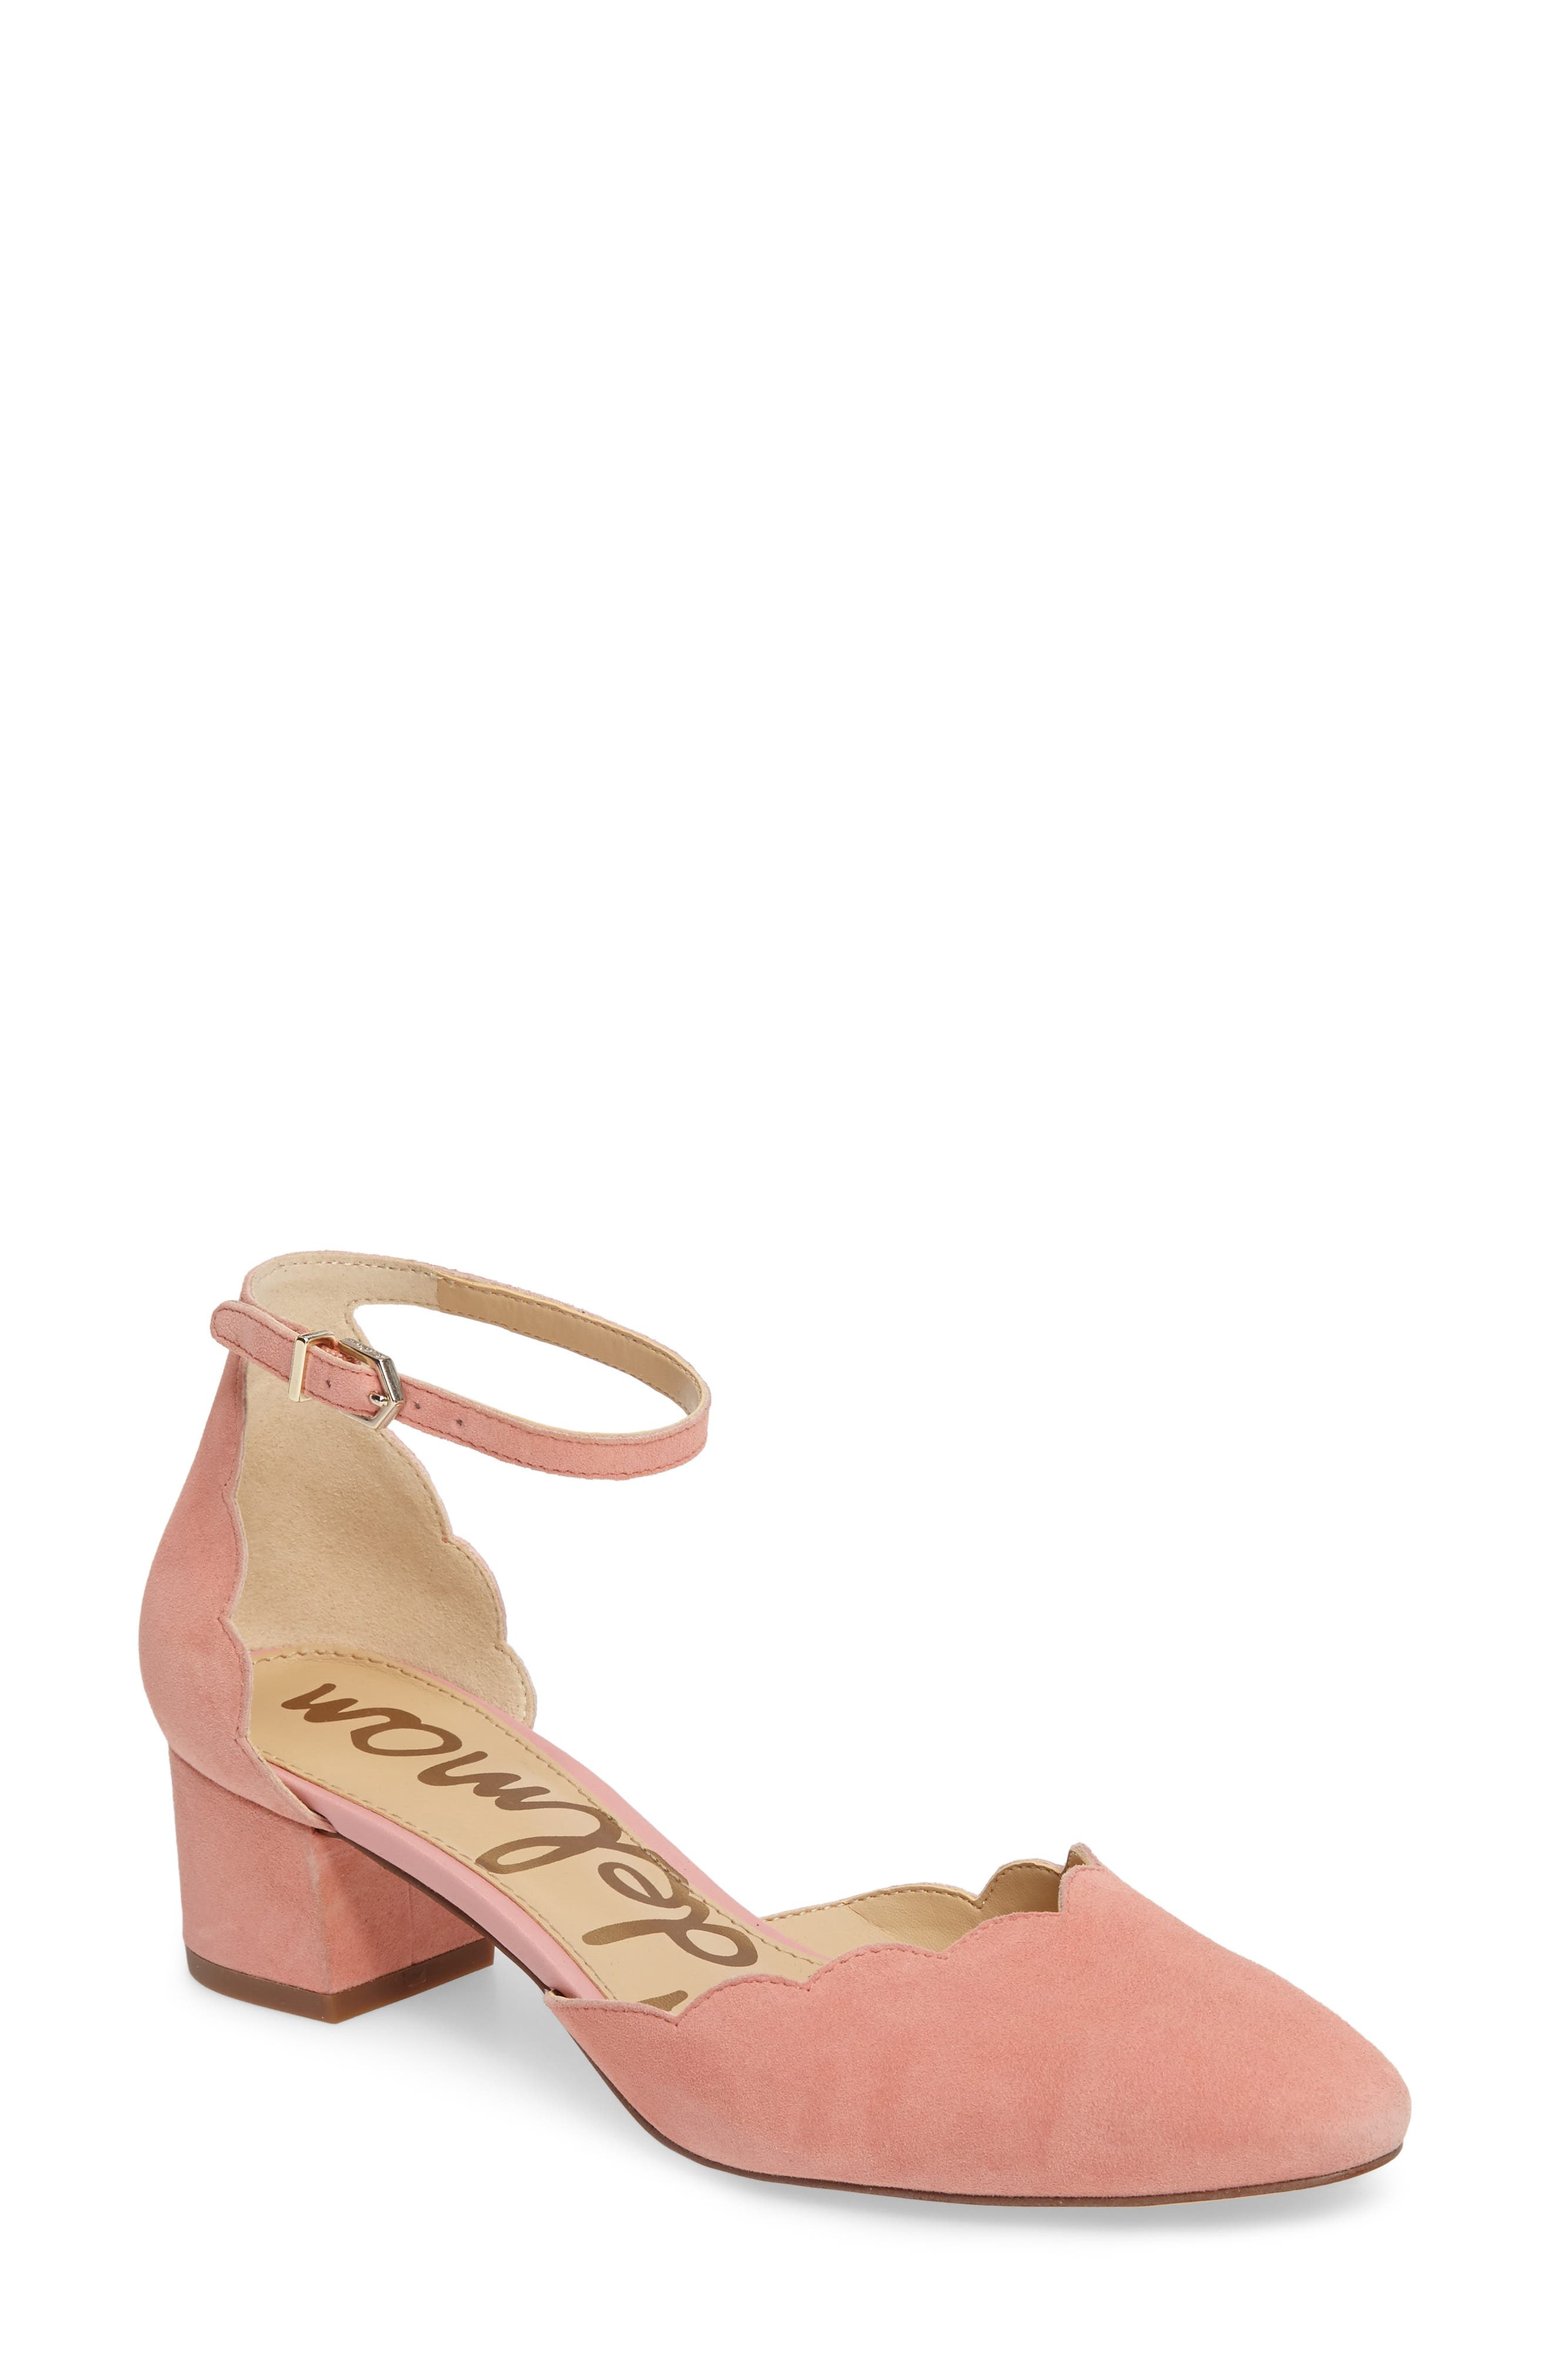 Alternate Image 1 Selected - Sam Edelman Lara Ankle Strap Pump (Women)